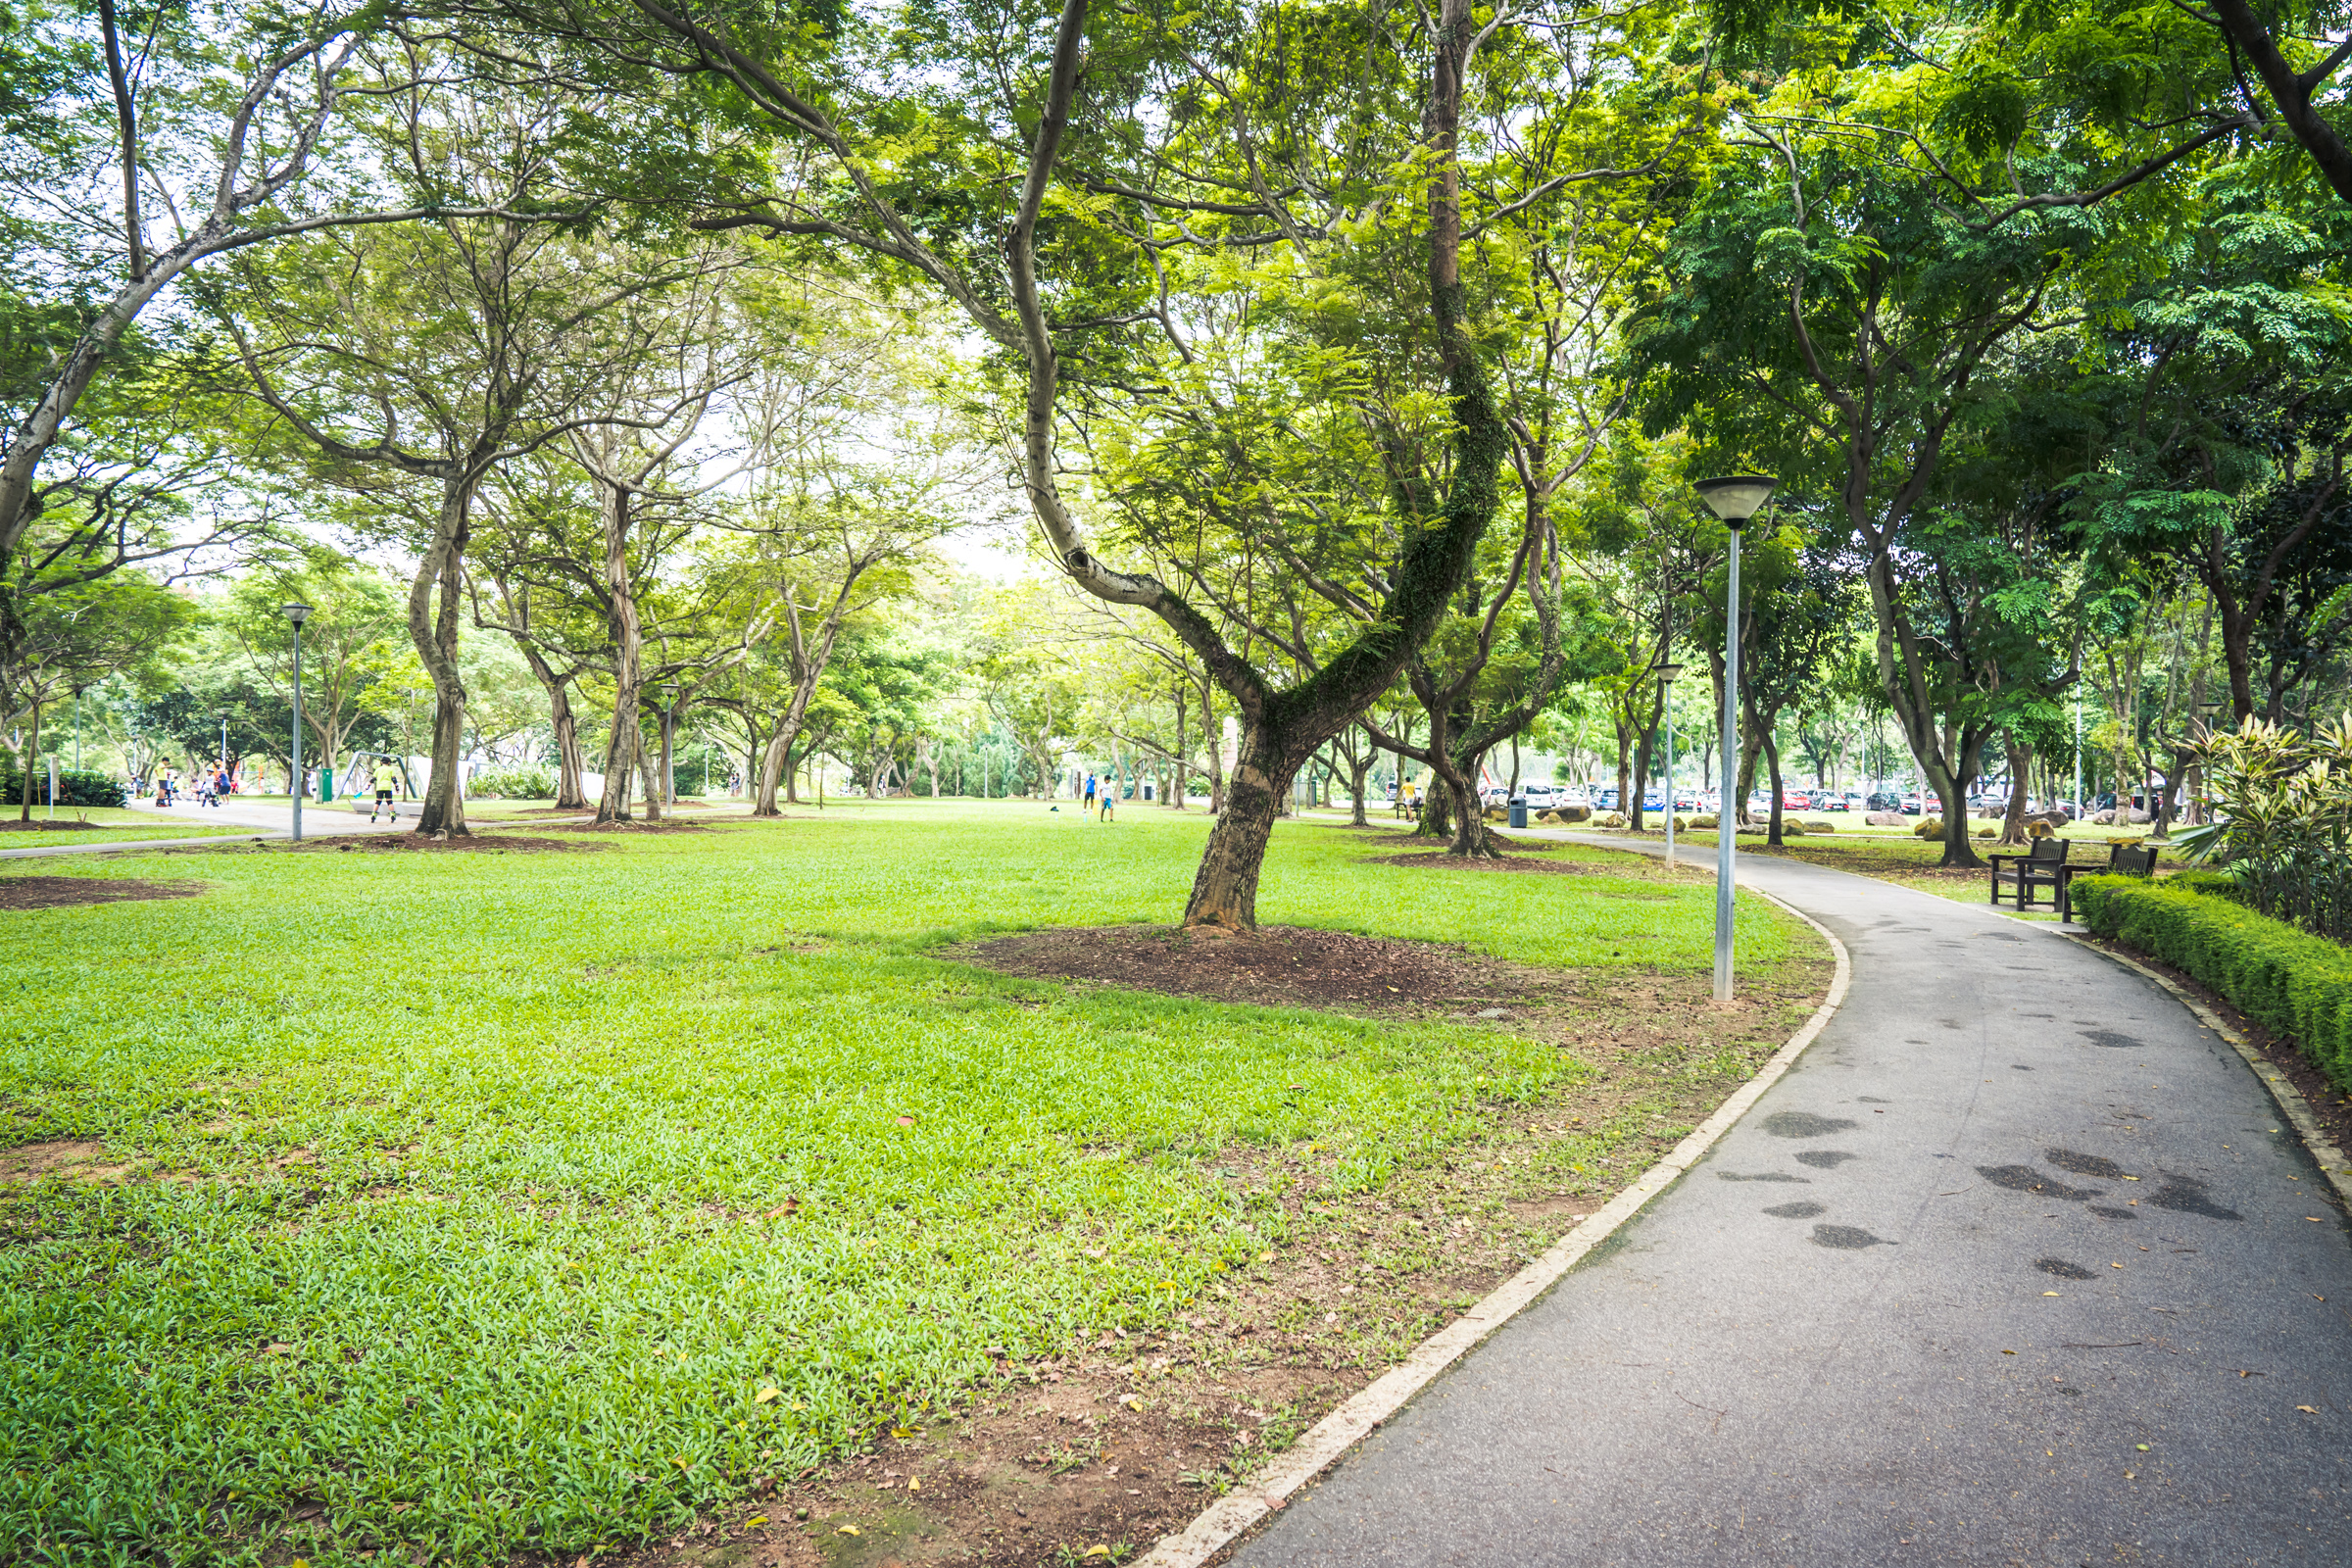 Photo of running path as part of the Tampines park connector